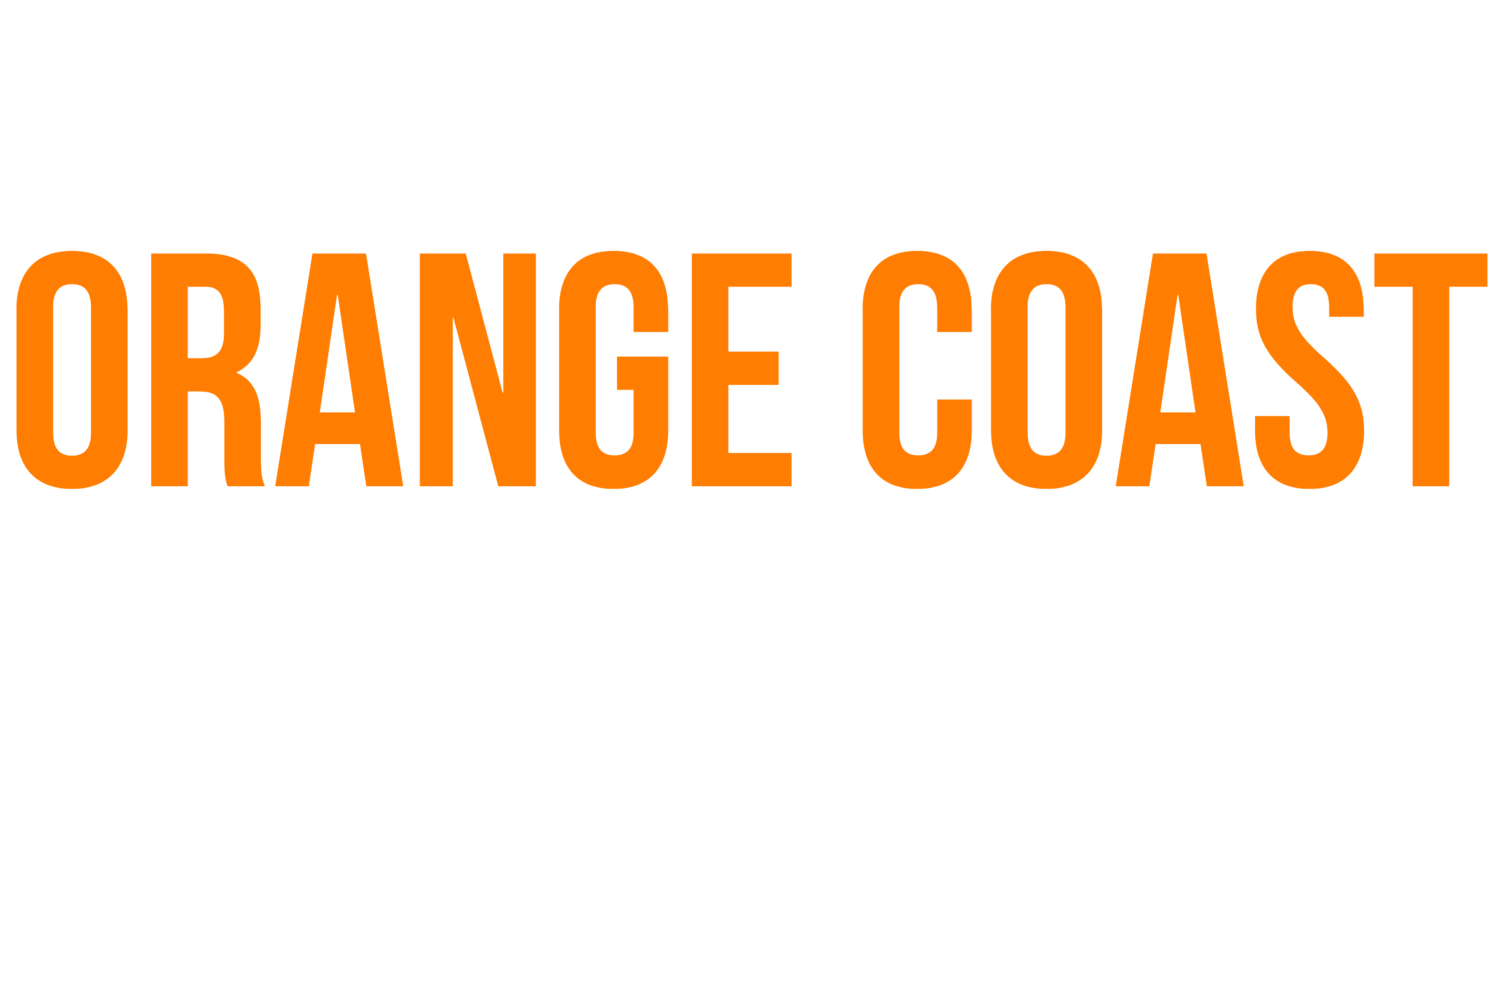 Orange Coast Free Methodist Church